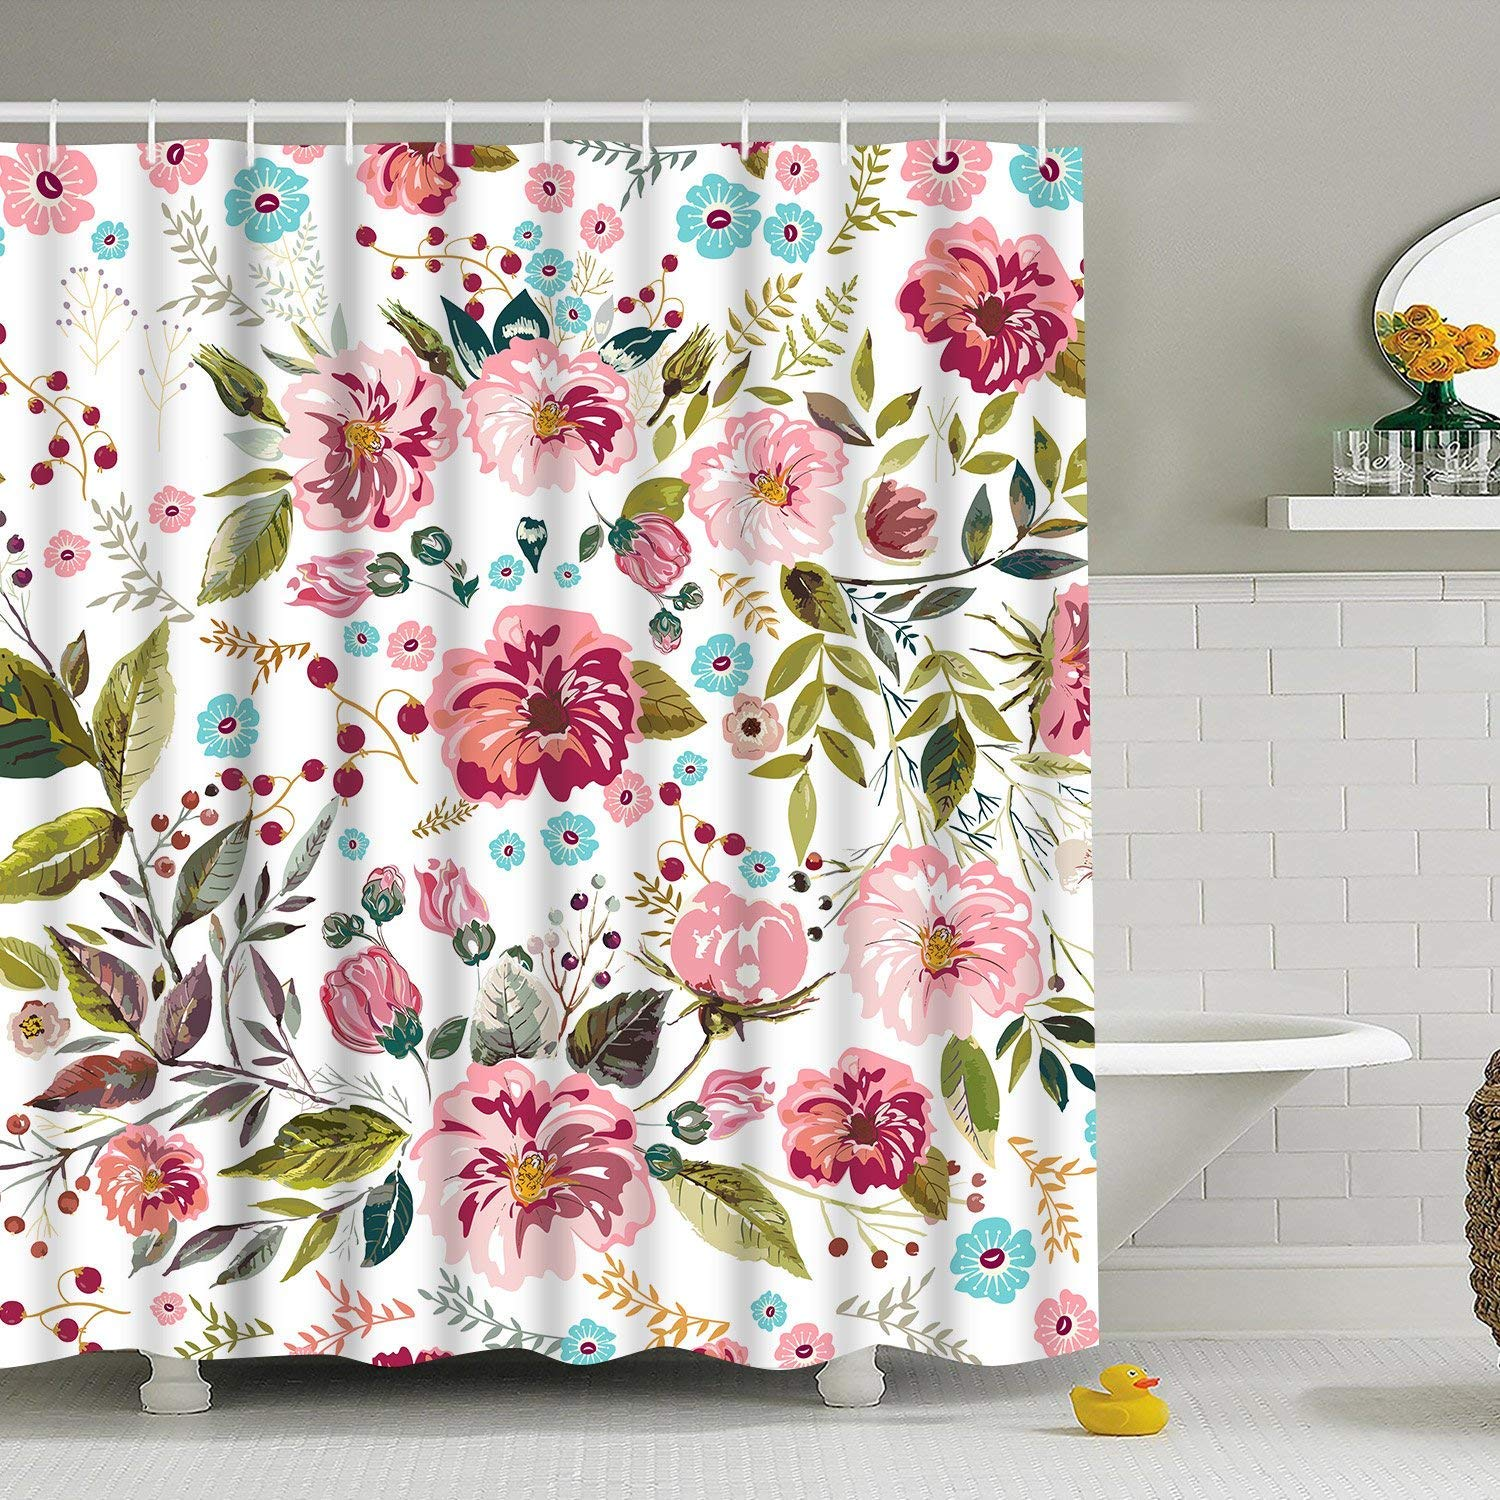 "BLEUM CADE Modern timesm Bathroom Shower Curtain Flower Bathroom Curtain Durable Bath Curtain Bathroom Accessories Ideas Kitchen Window Curtain with 12 Hooks (Multicolor, 84"" L × 69"" W)"